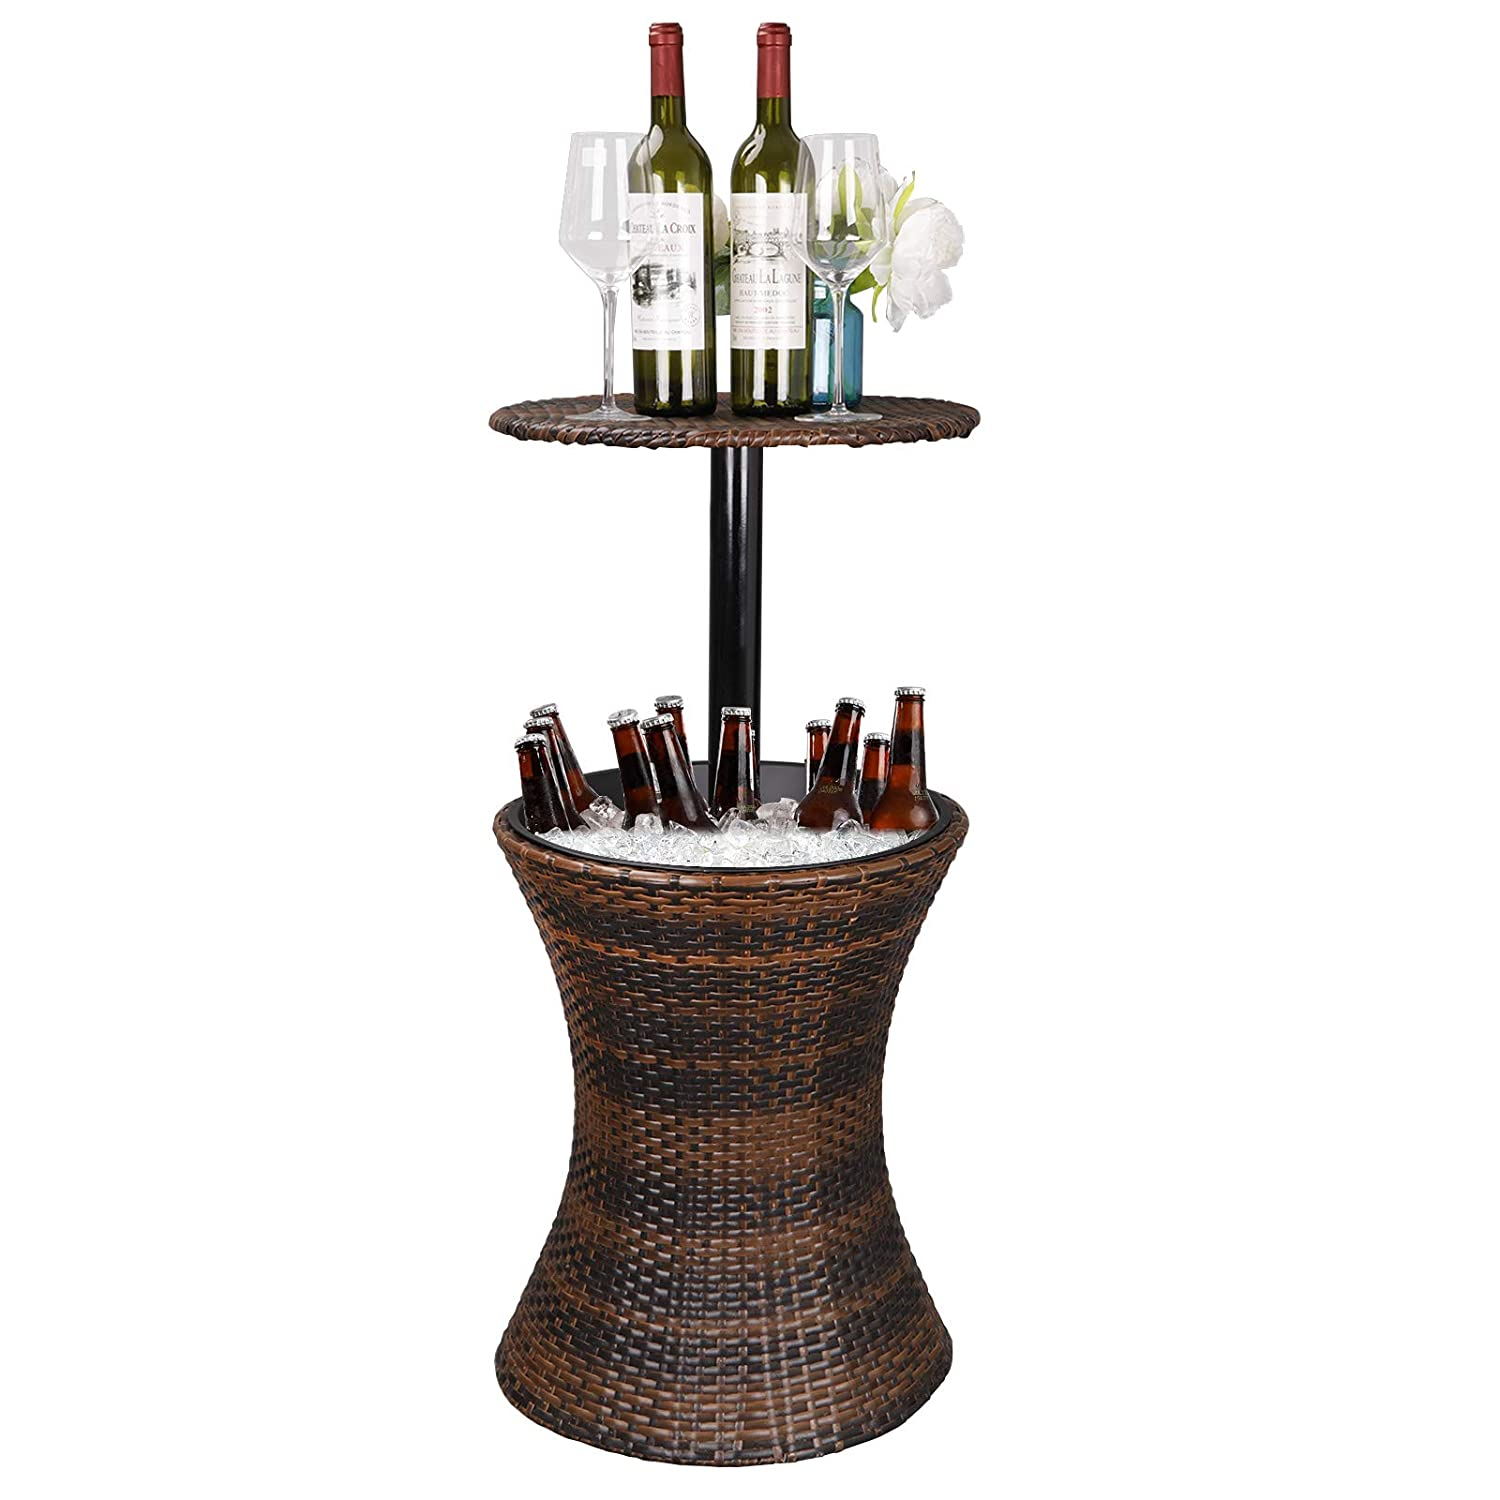 Super Deal 3in1 All-Weather Wicker Bar Table + Ice Bucket + Cocktail Coffee Table All in One, Rattan Style Adjustable Height Patio Party Deck Pool Use, Brown